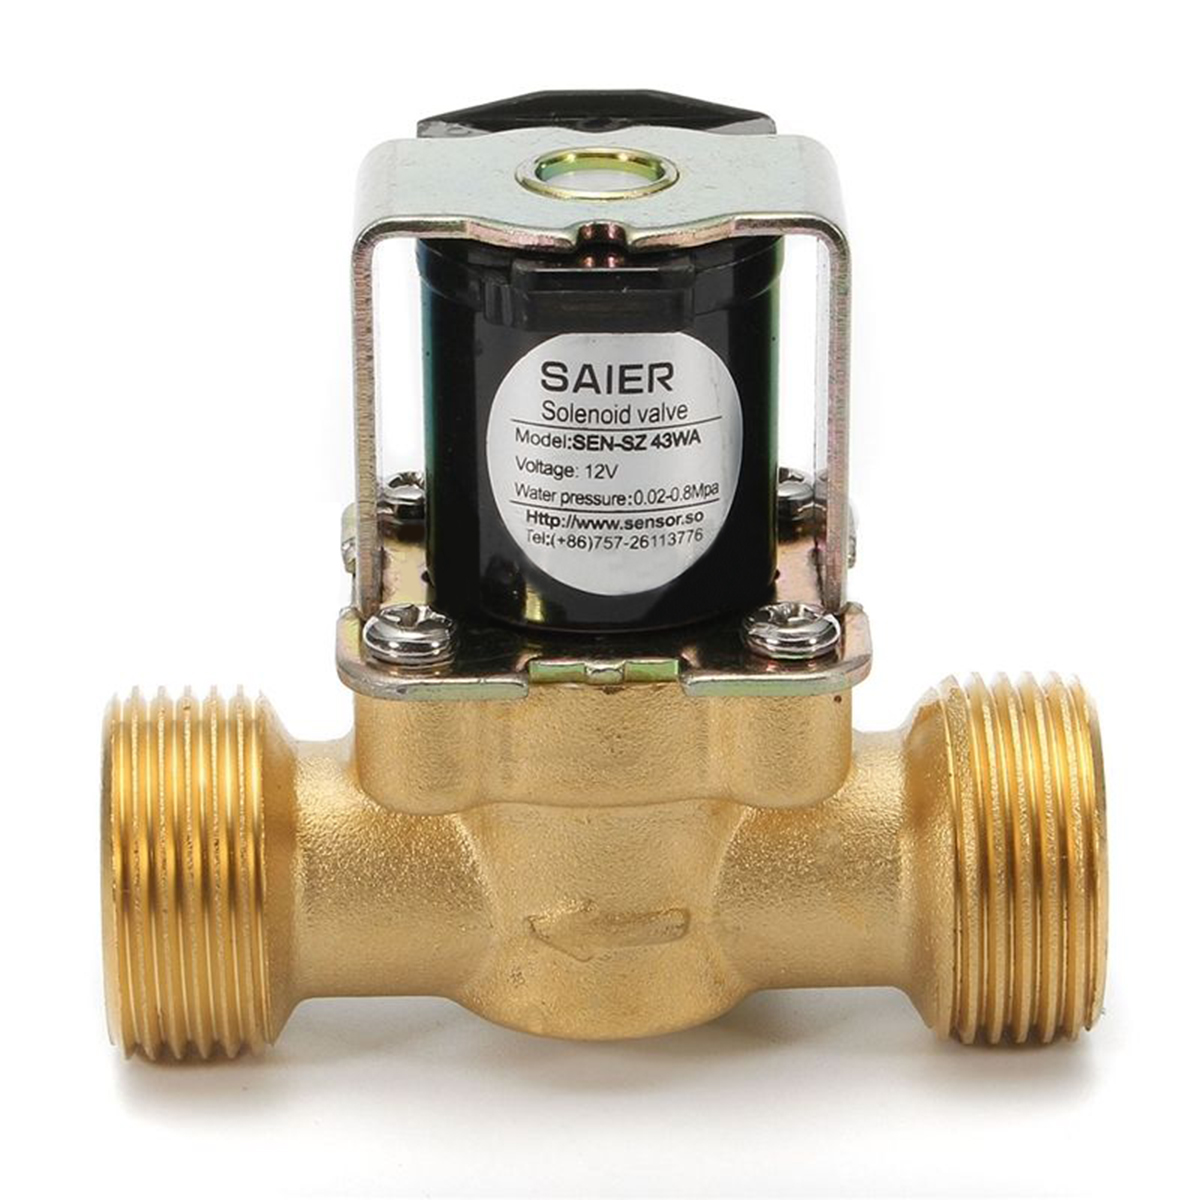 New 3/4 NPSM 12V DC Electric Solenoid Valve VDC Gas Oil Water Air Normally Closed Moisture-proof Slim Brass Diaphragm Valves